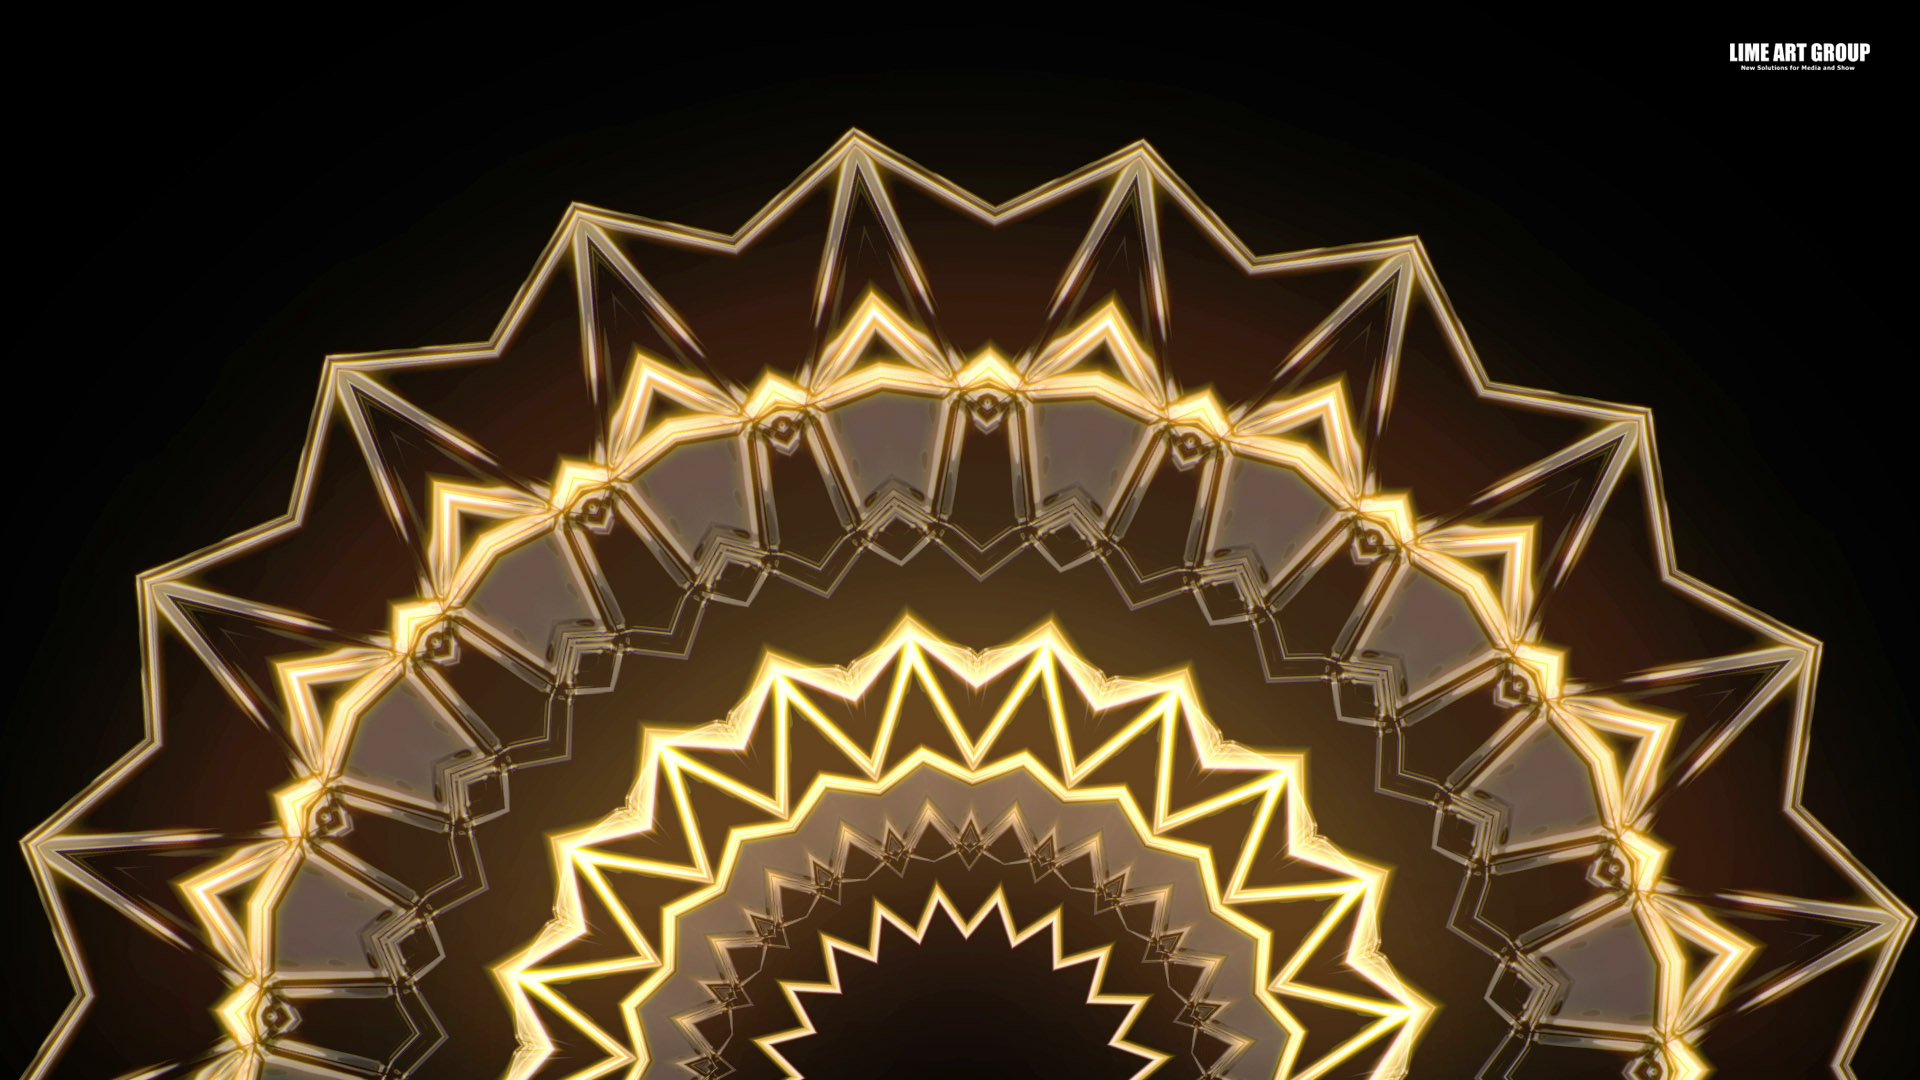 Wallpapers Goldstein Vj Loops  (1)